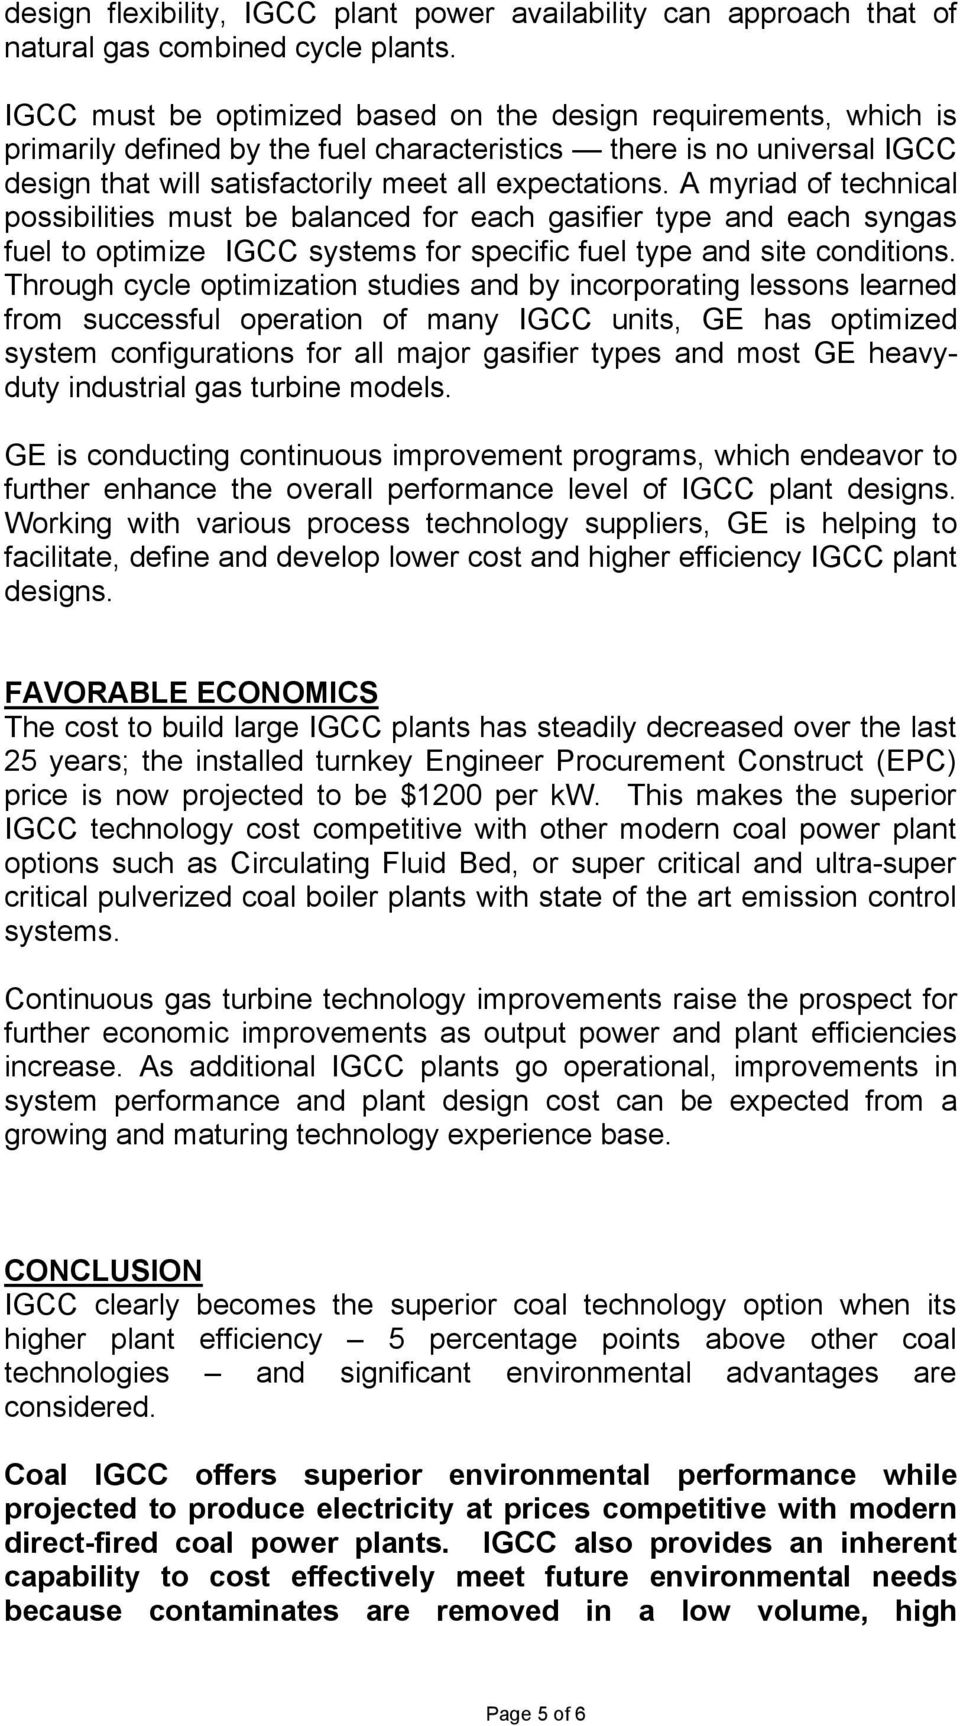 A myriad of technical possibilities must be balanced for each gasifier type and each syngas fuel to optimize IGCC systems for specific fuel type and site conditions.